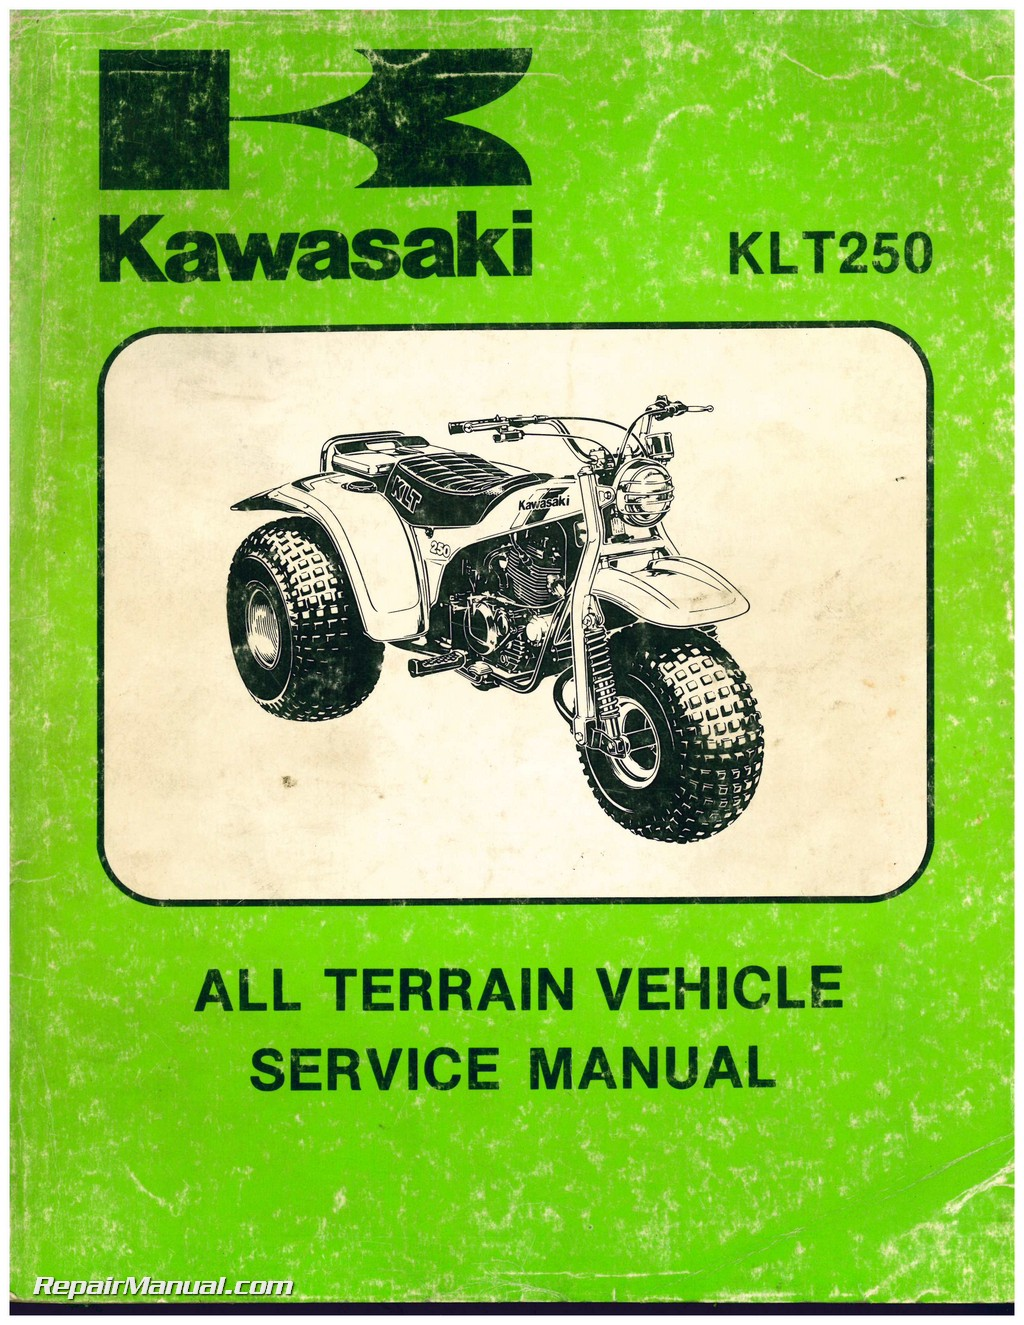 Klt 250 Wiring Diagram Opinions About Honda 1982 Kawasaki Klt250 A1 3 Wheel Atc Printed Service Manual Rh Repairmanual Com For